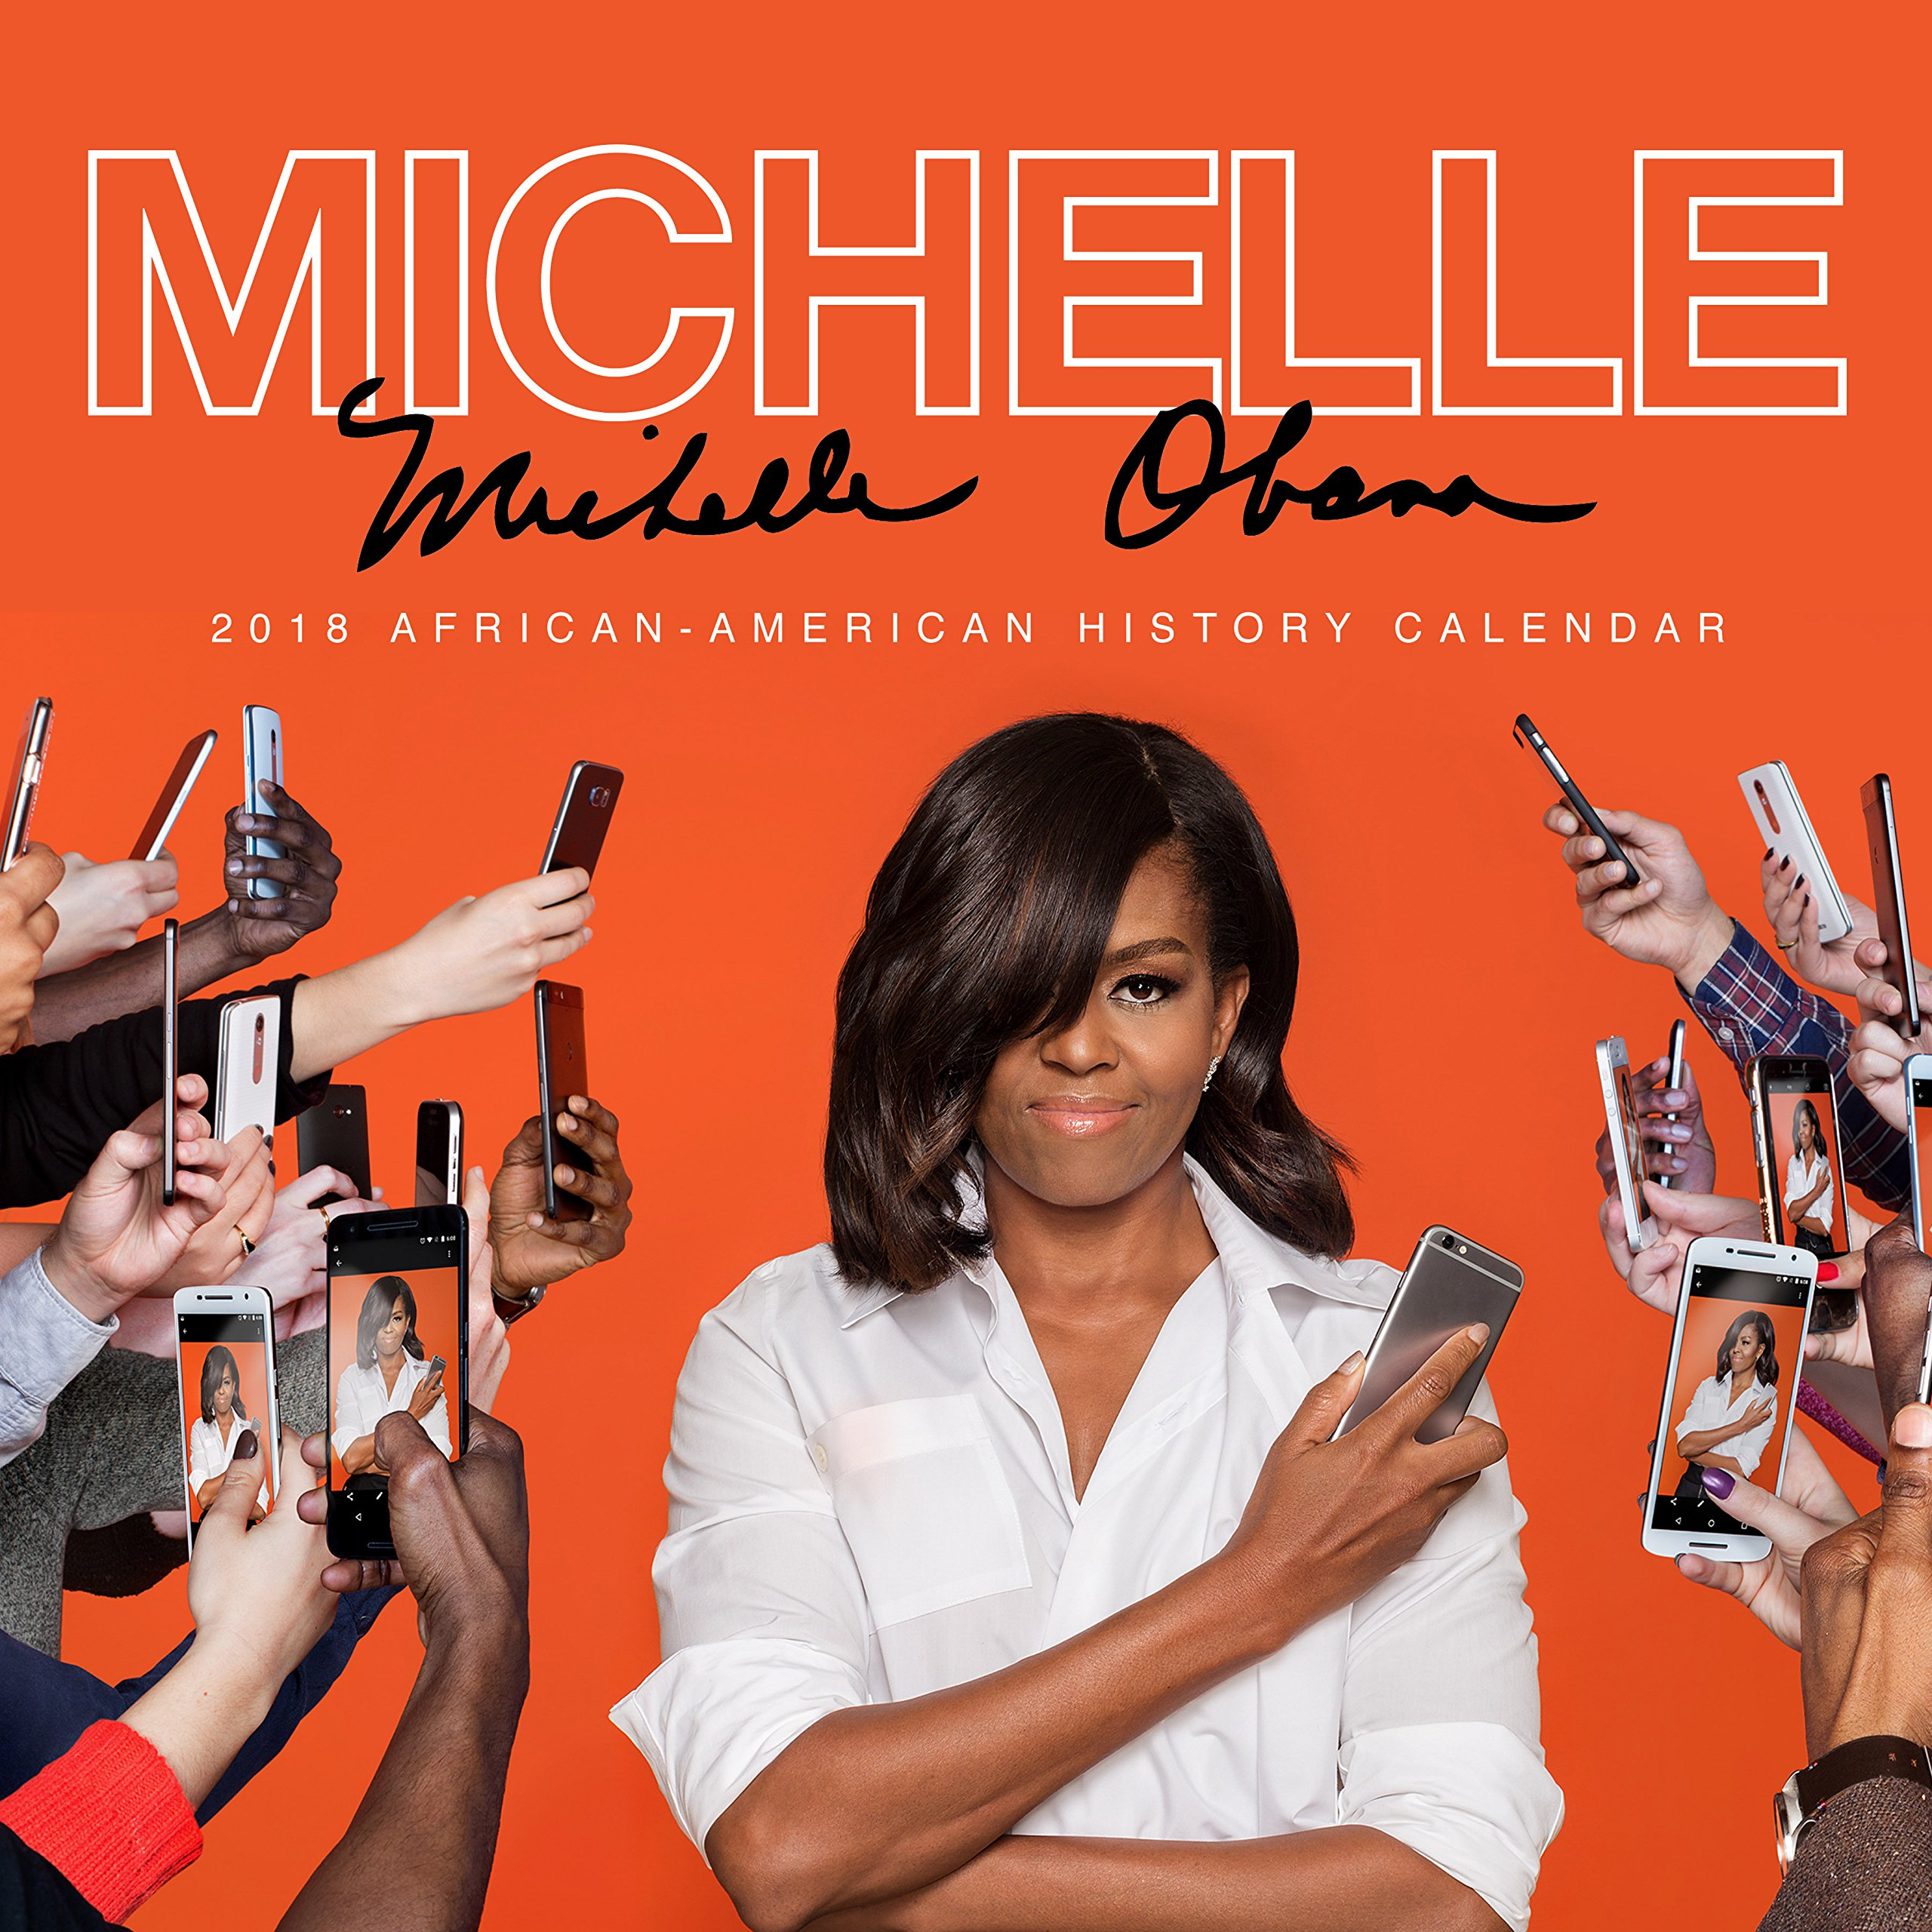 Michelle Obama 2018 African American History Calendar